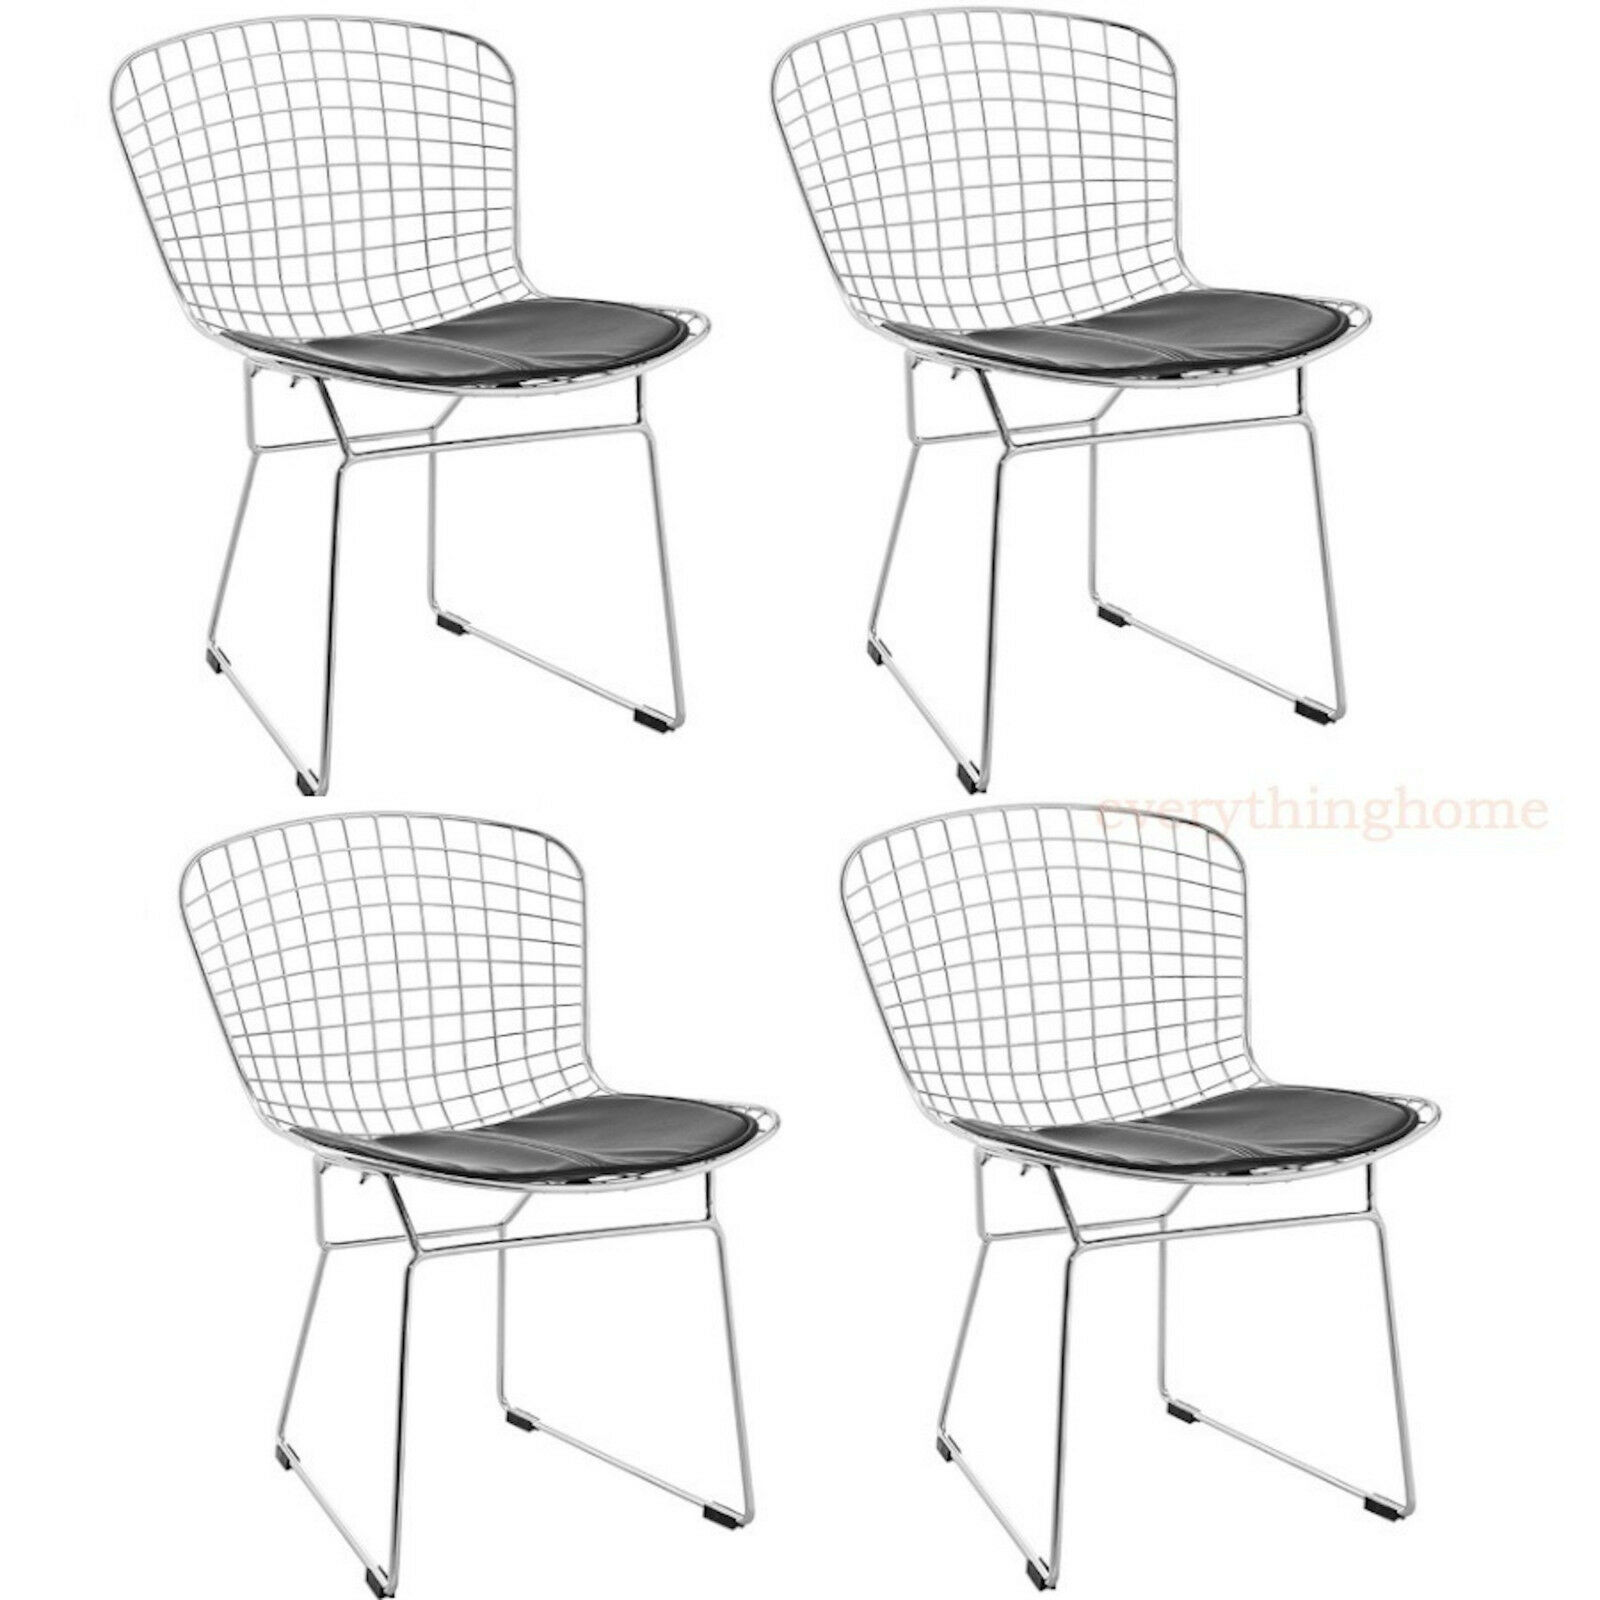 4x bertoia style chair dining side cafe steel wire chrome mesh black pad 331 lb